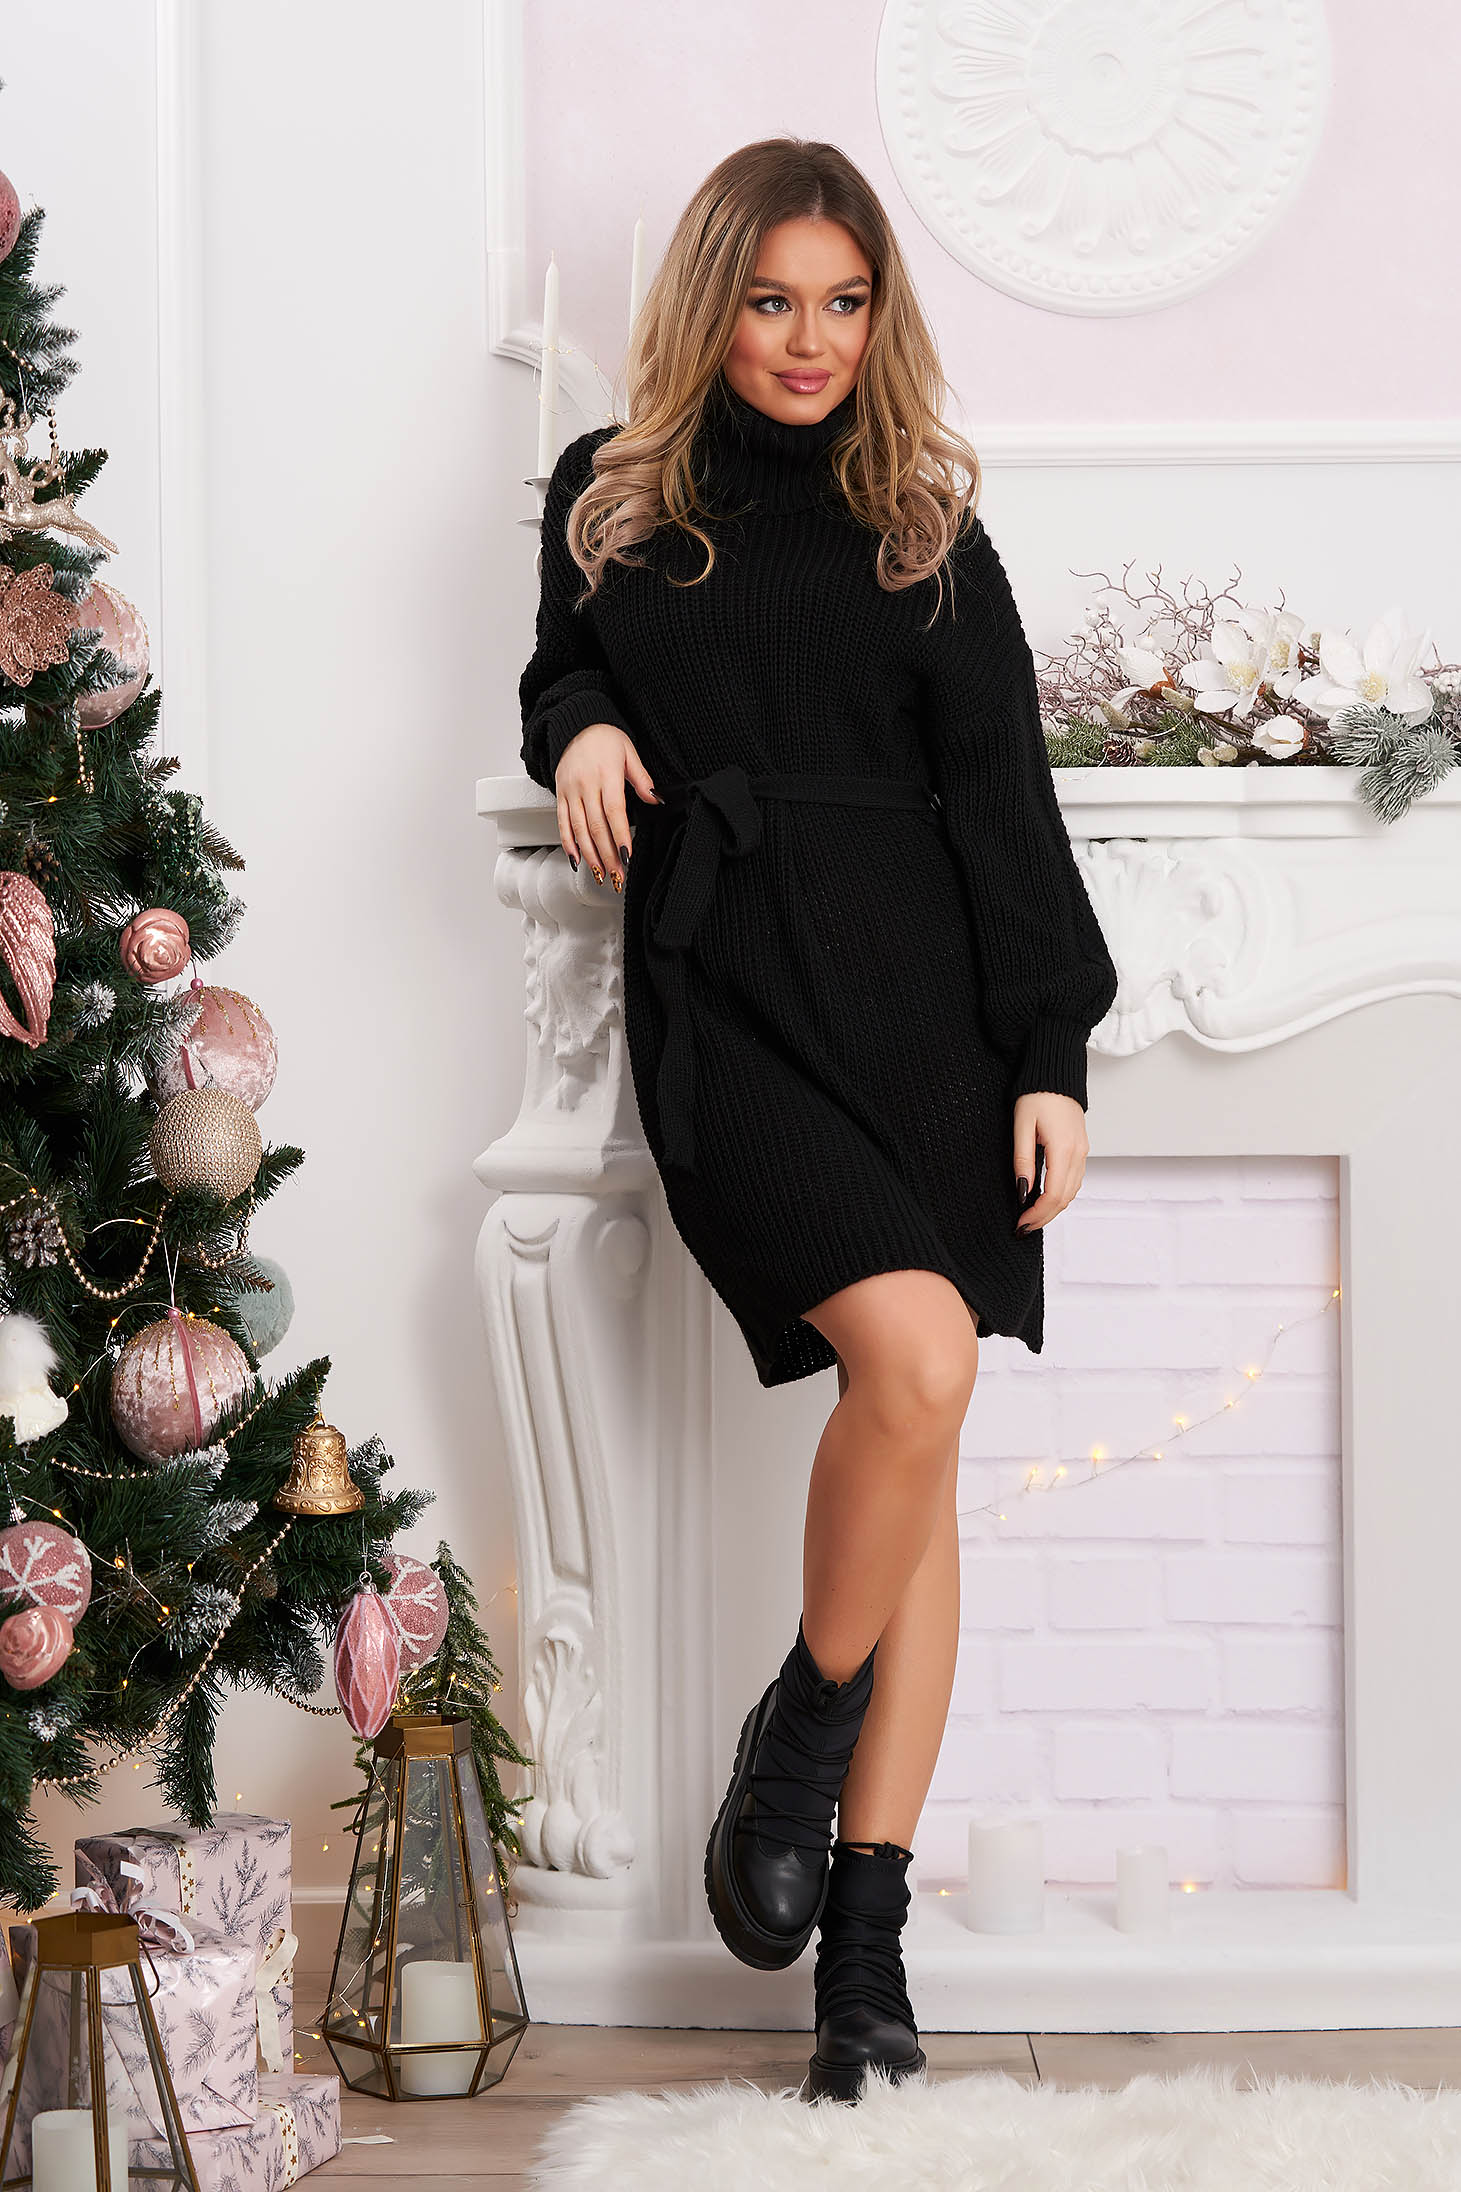 Black dress knitted from elastic fabric from striped fabric accessorized with tied waistband flared